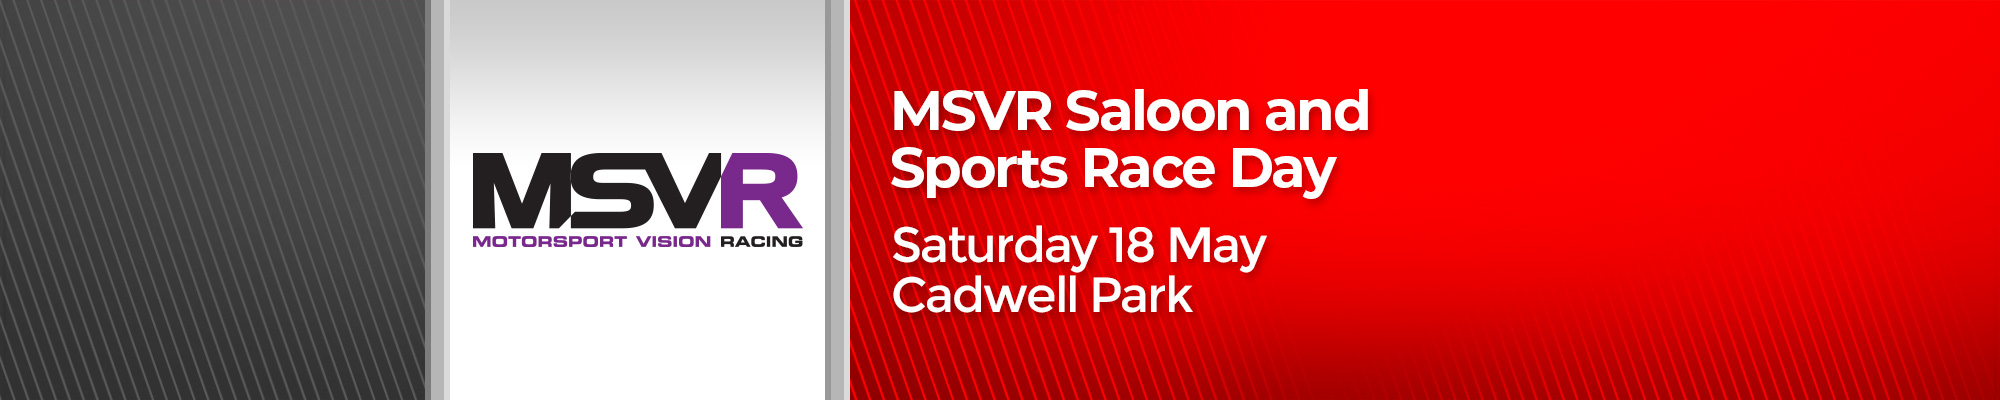 MSVR Saloon and Sports Car Day